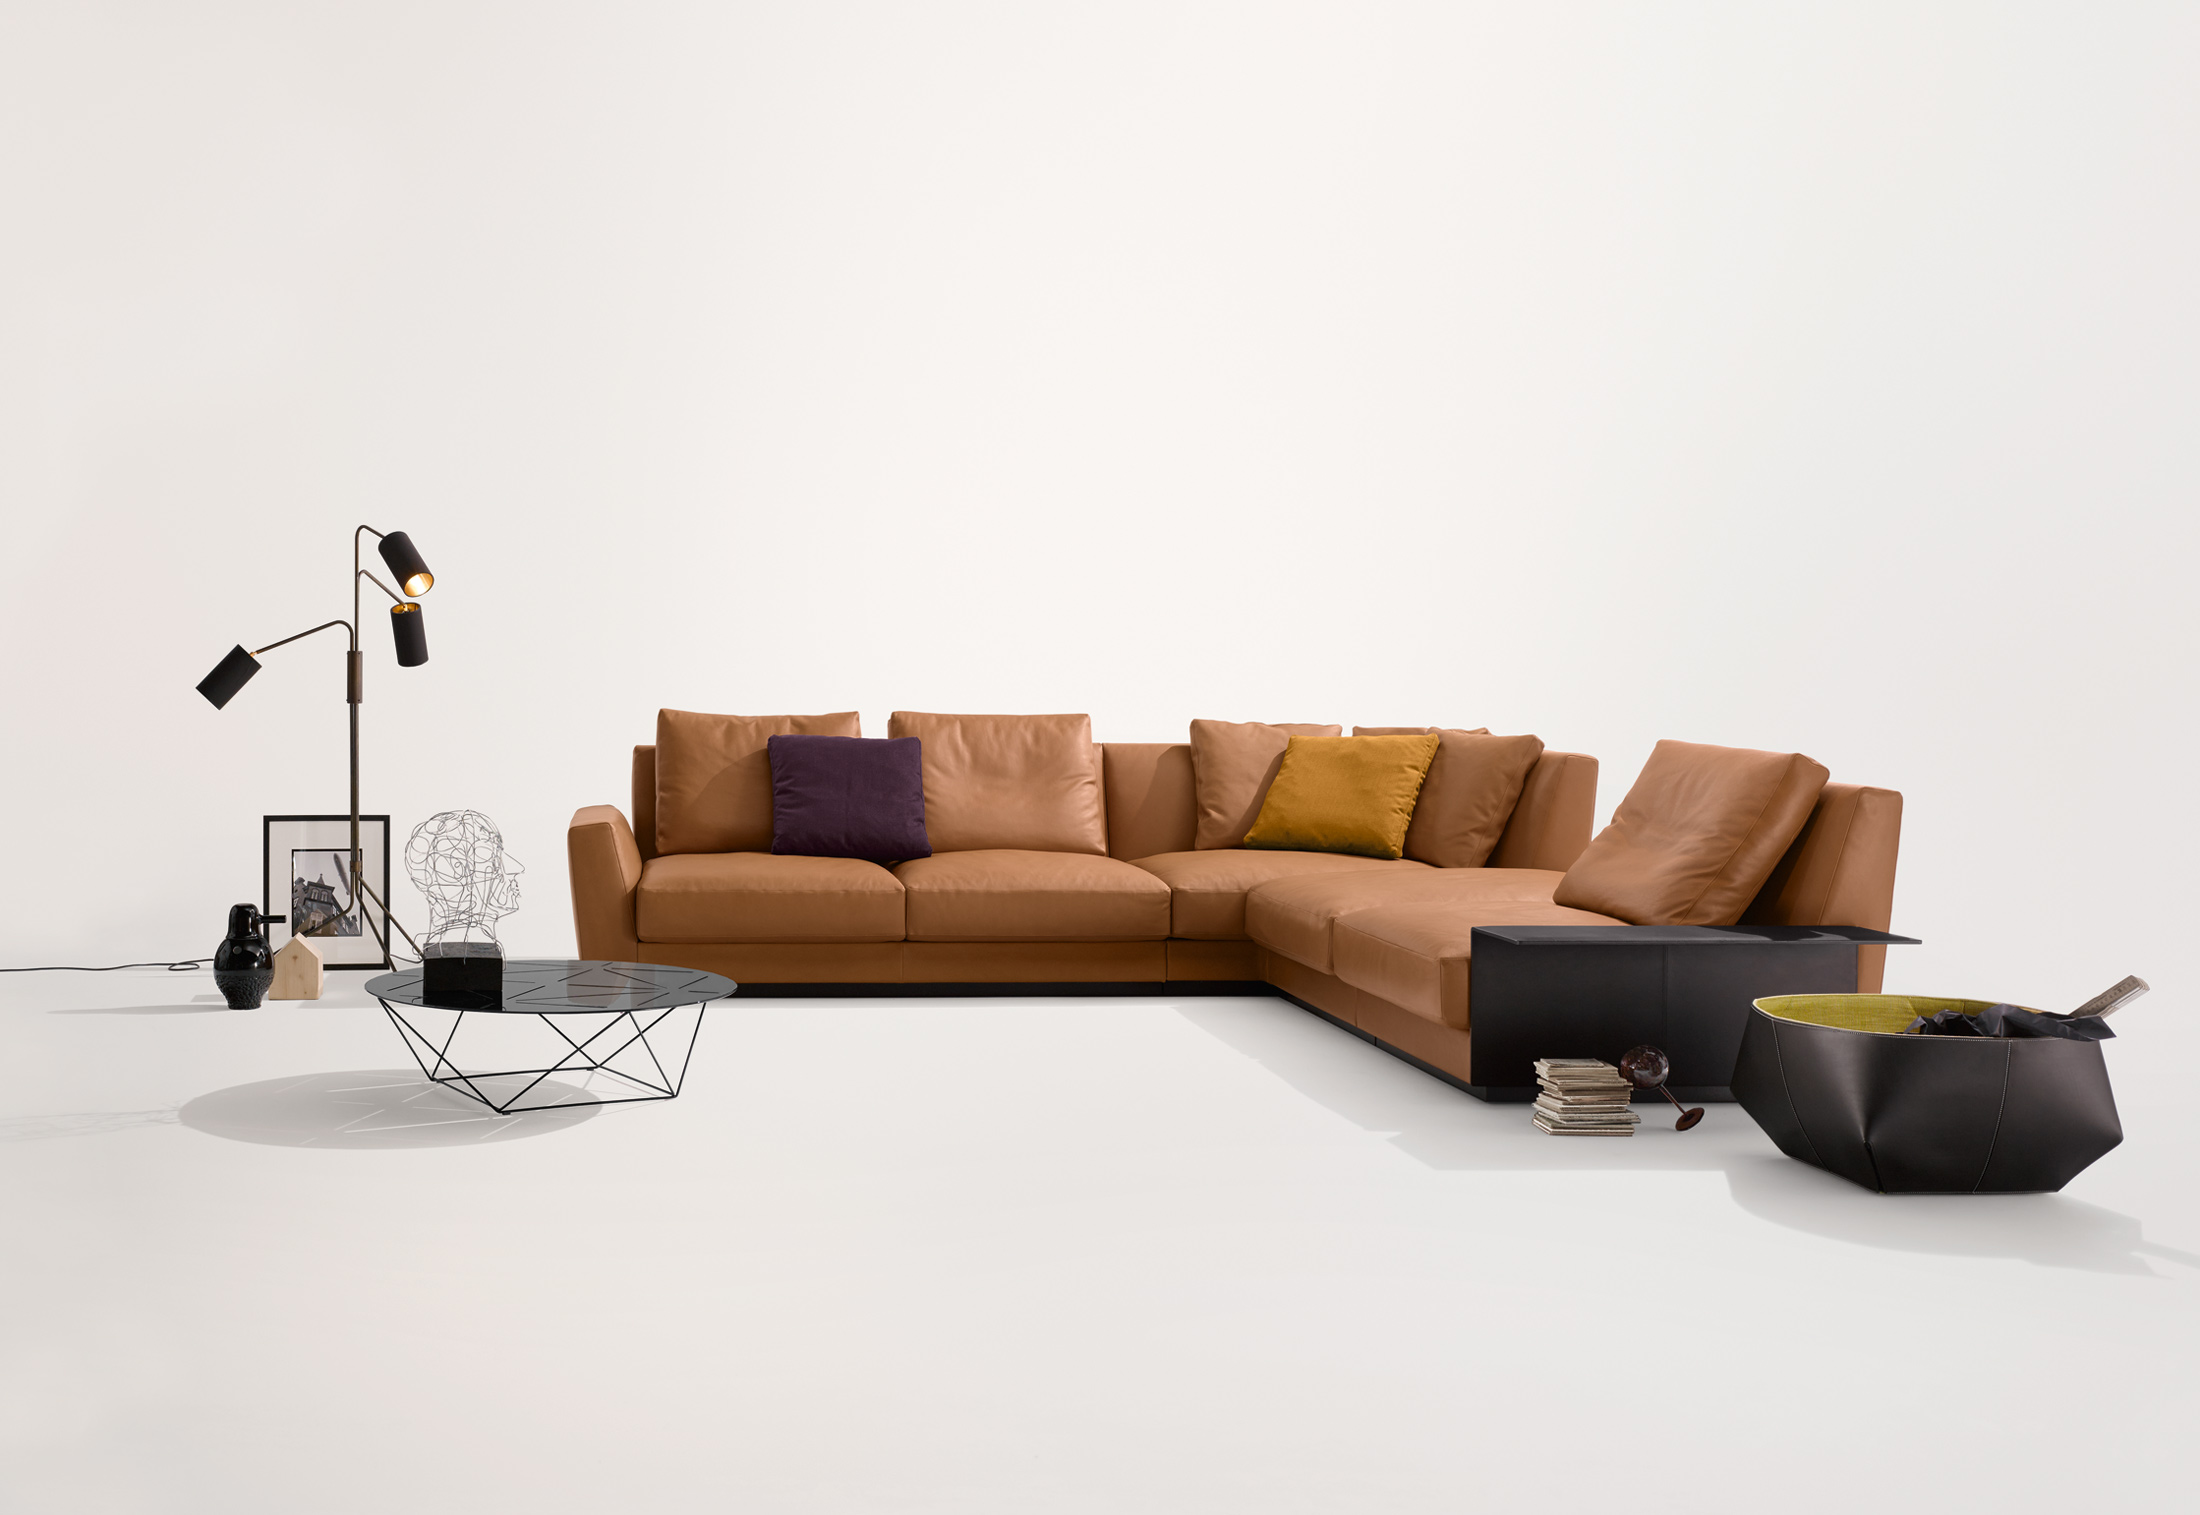 Grand suite by walter knoll stylepark grand suite grand suite grand suite parisarafo Gallery